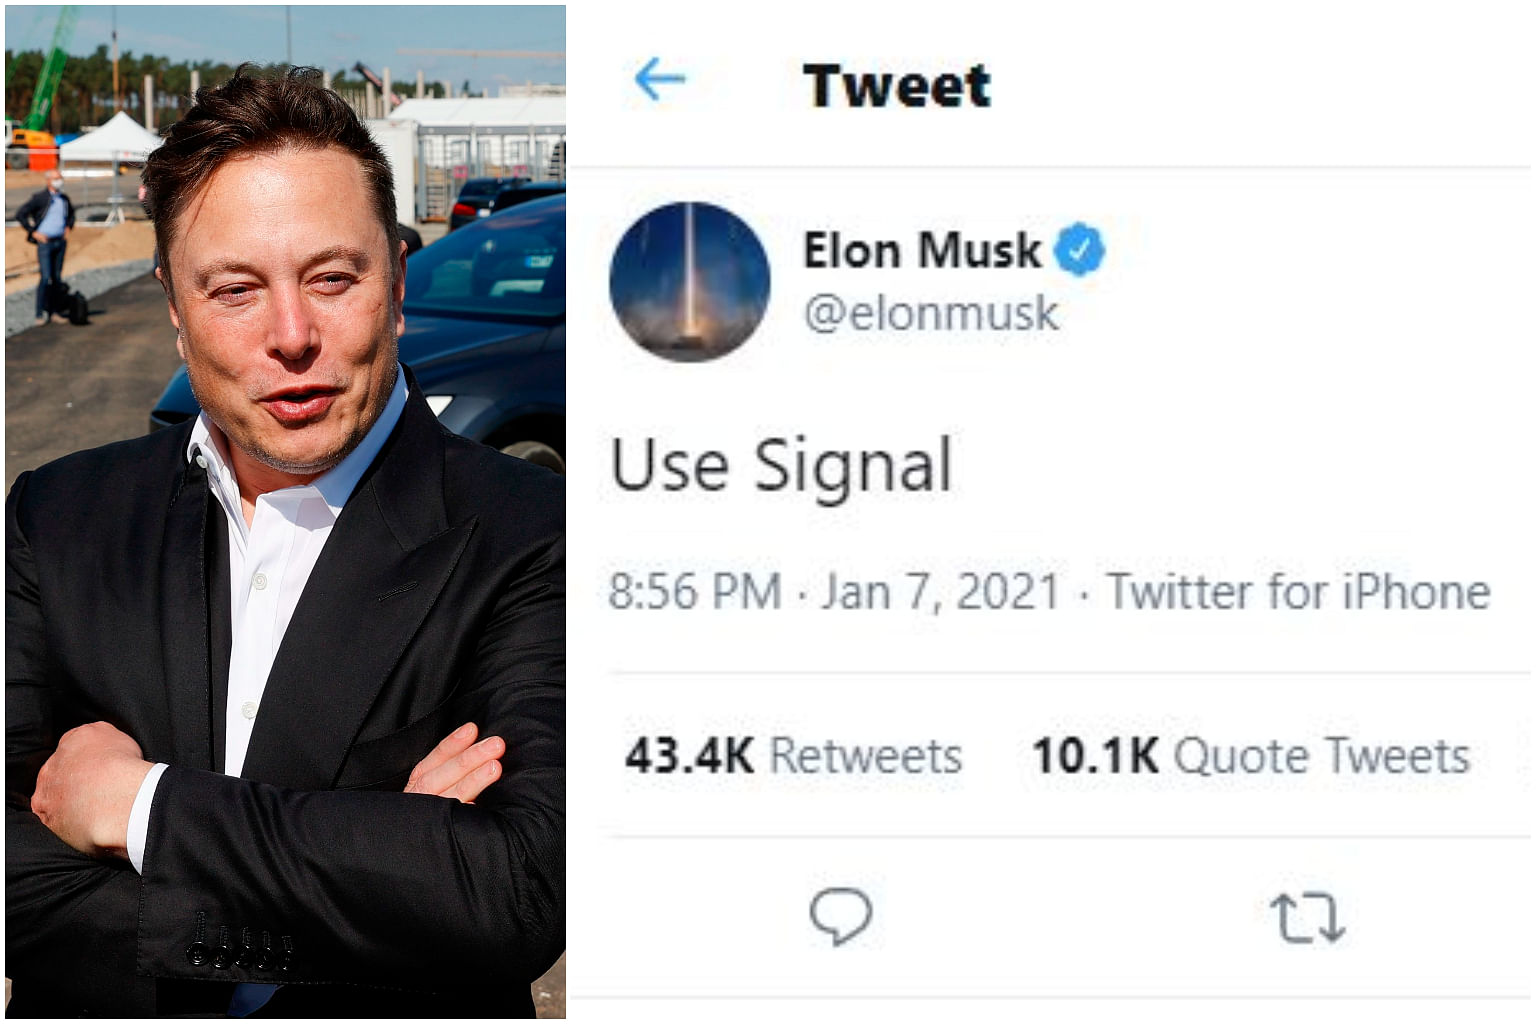 Elon Musk tweeted 'Use Signal' and investors sent wrong stock soaring  6,350%, Companies & Markets News & Top Stories - The Straits Times